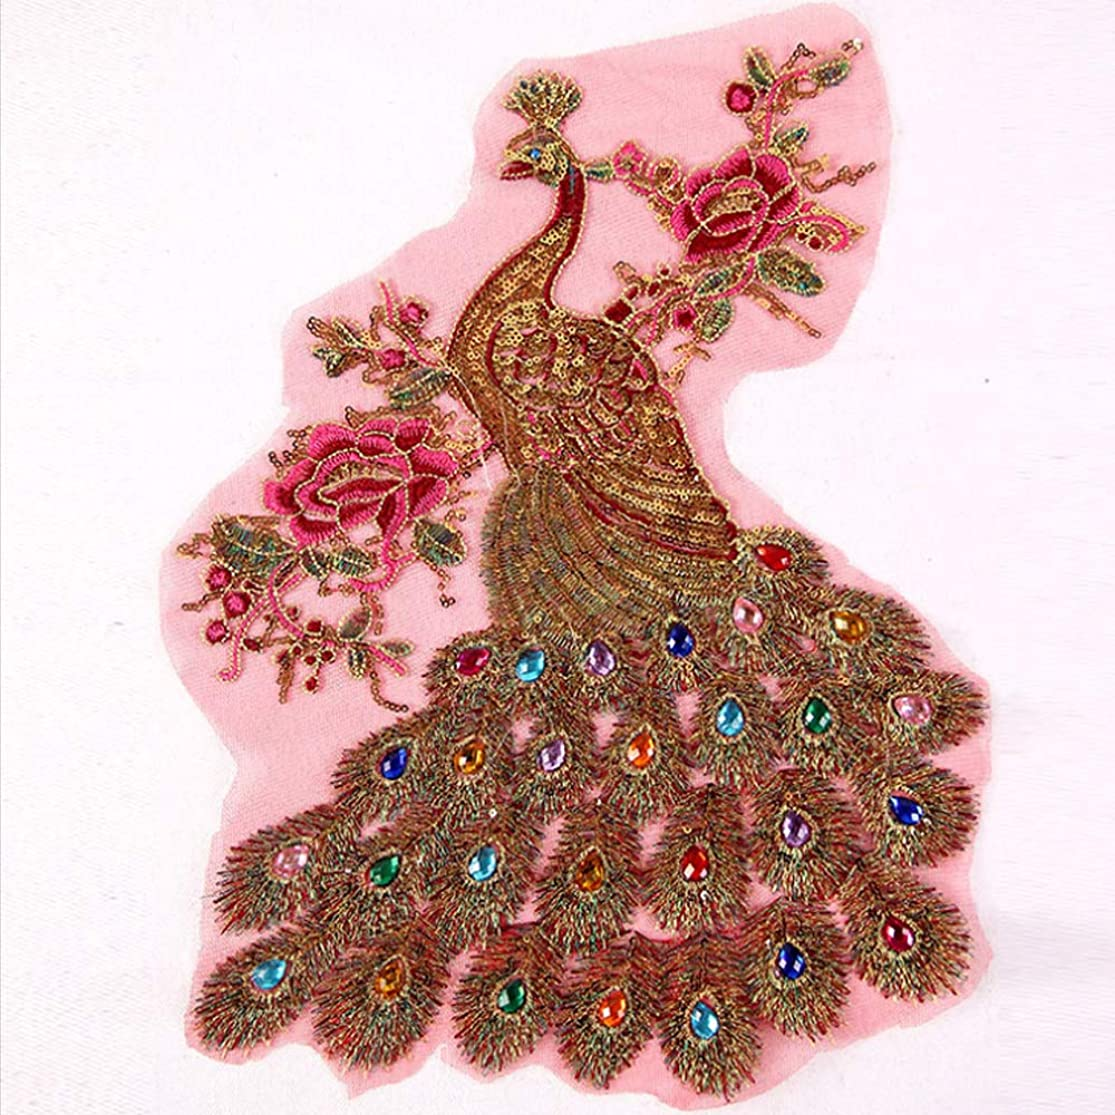 Handmade Embroidery Red Peacock Sew on Rhinestones Sequins Beads Applique Patches Phoenix Wedding Dress Accessory Sewing Crystal Decor for Evening Dress sfqrgqed1